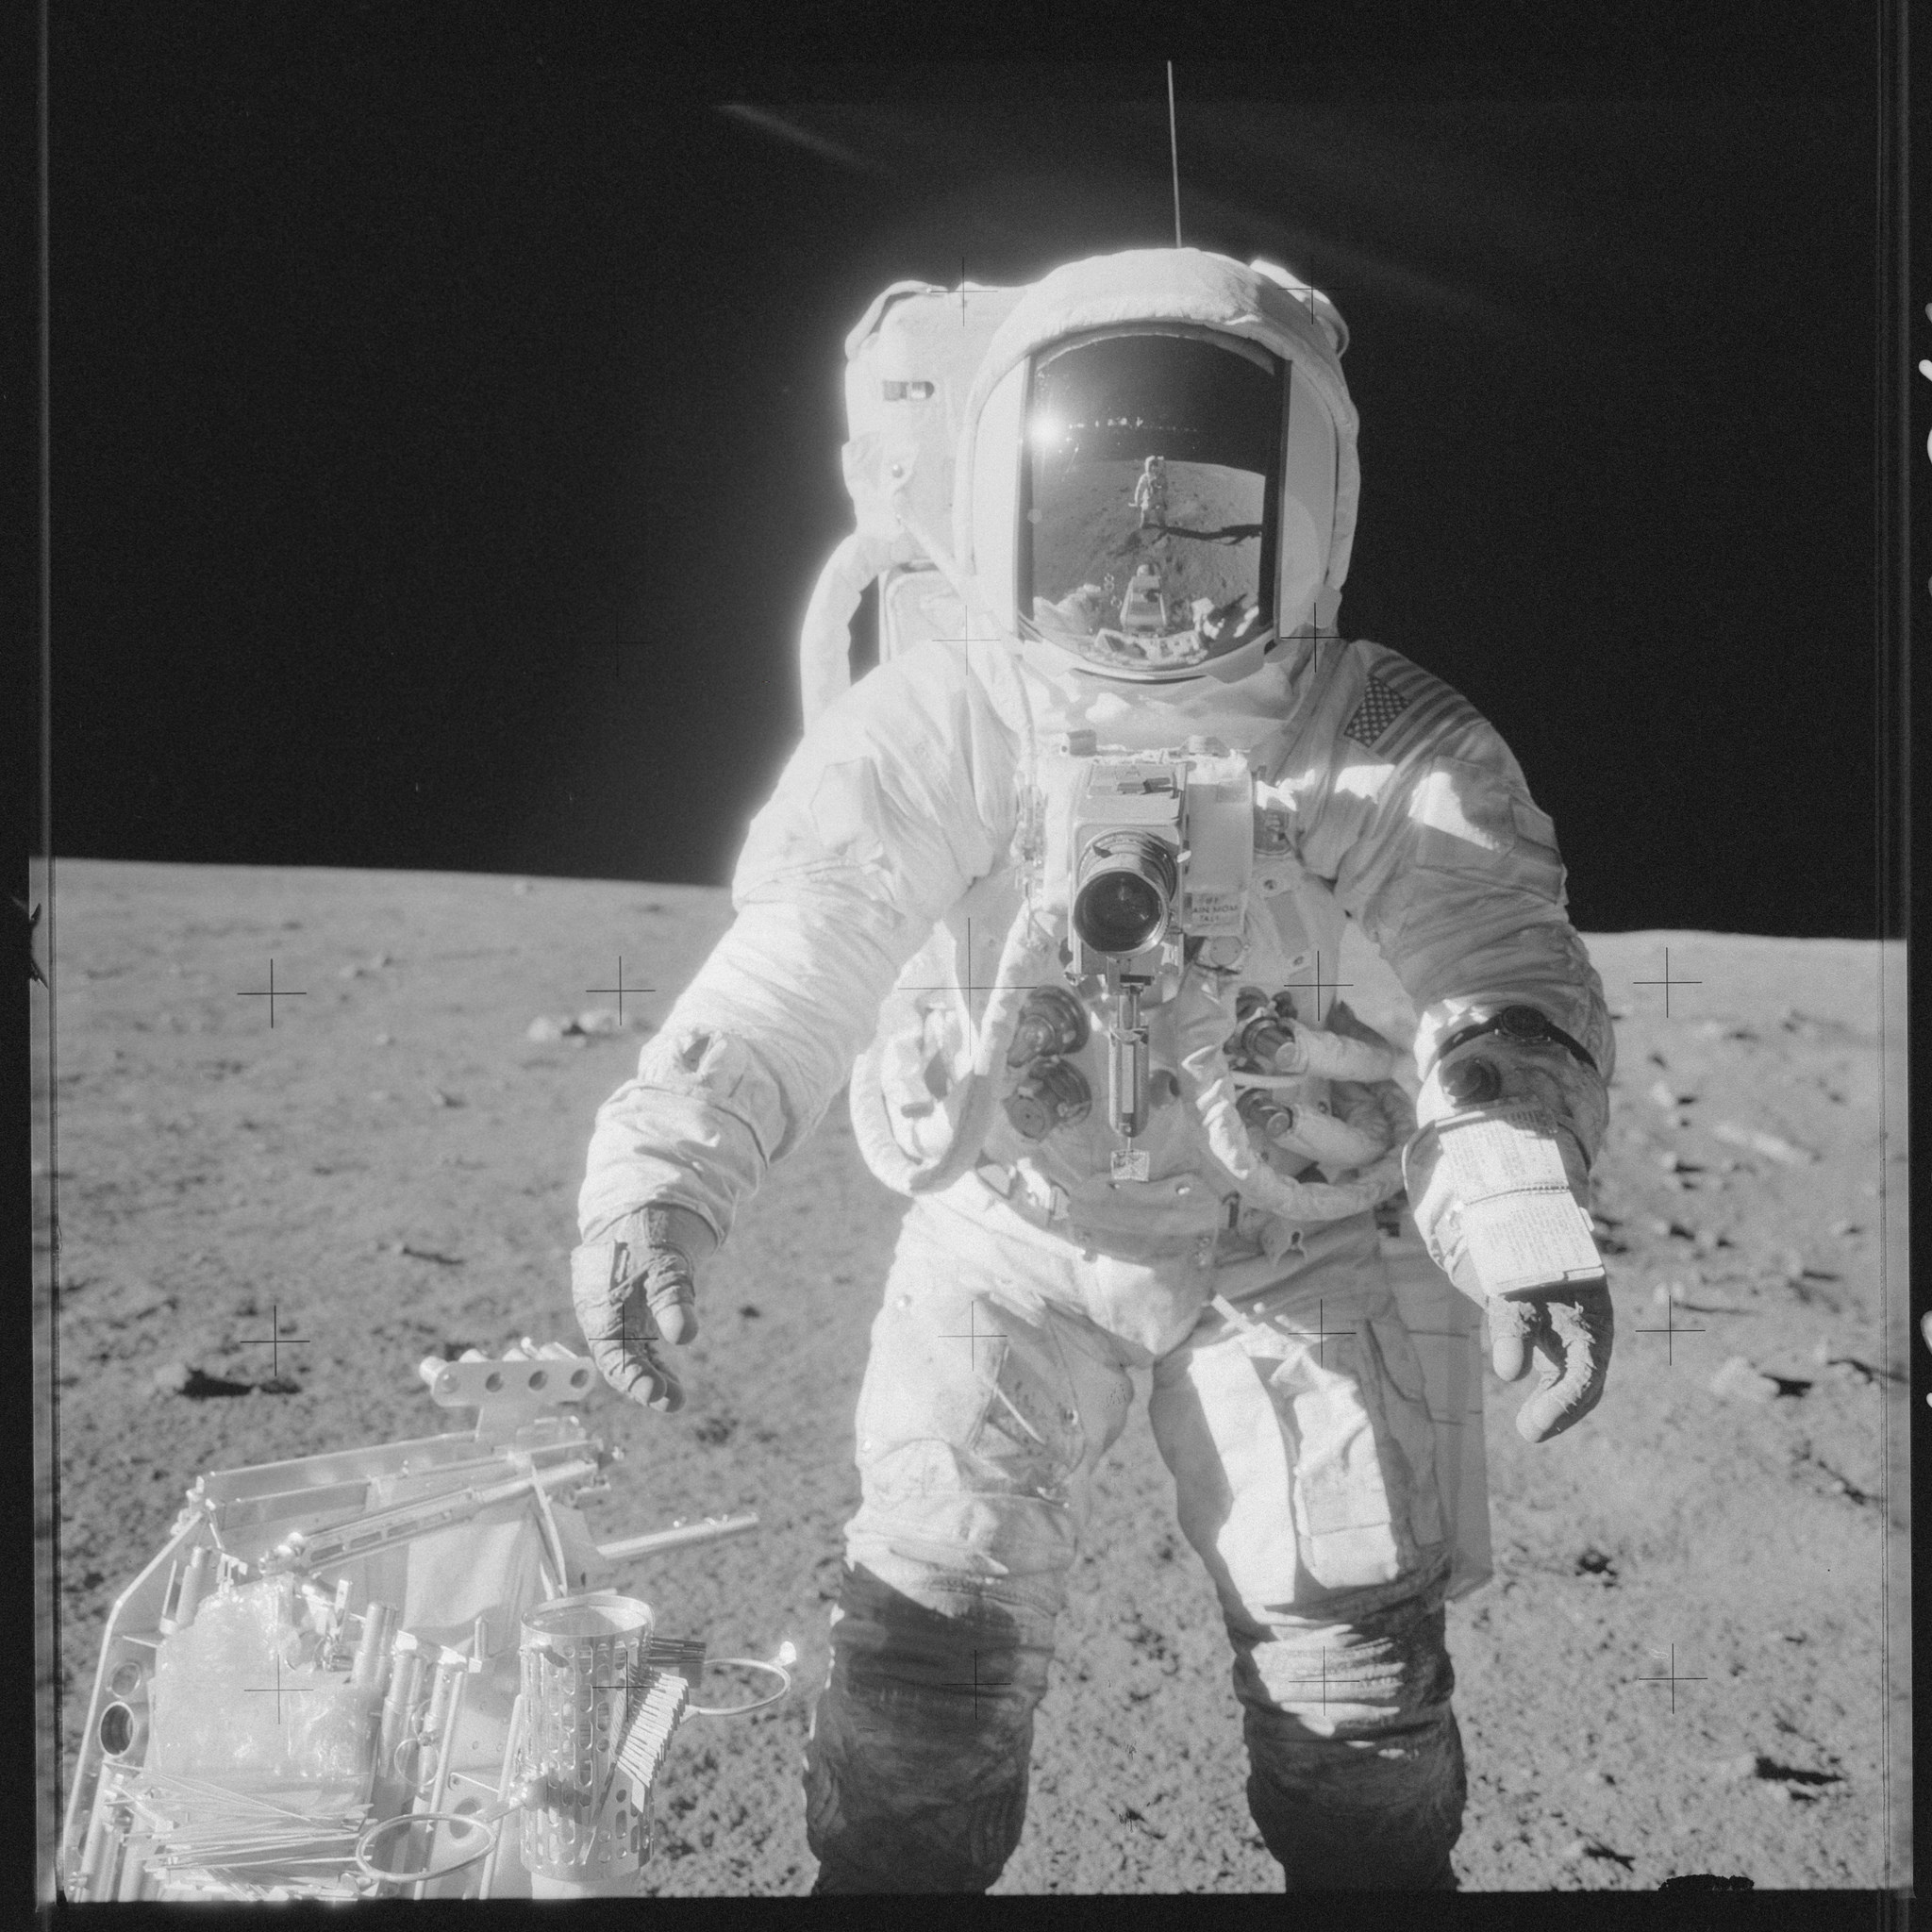 The Best Lesser Known Apollo Images To Make You Long For A